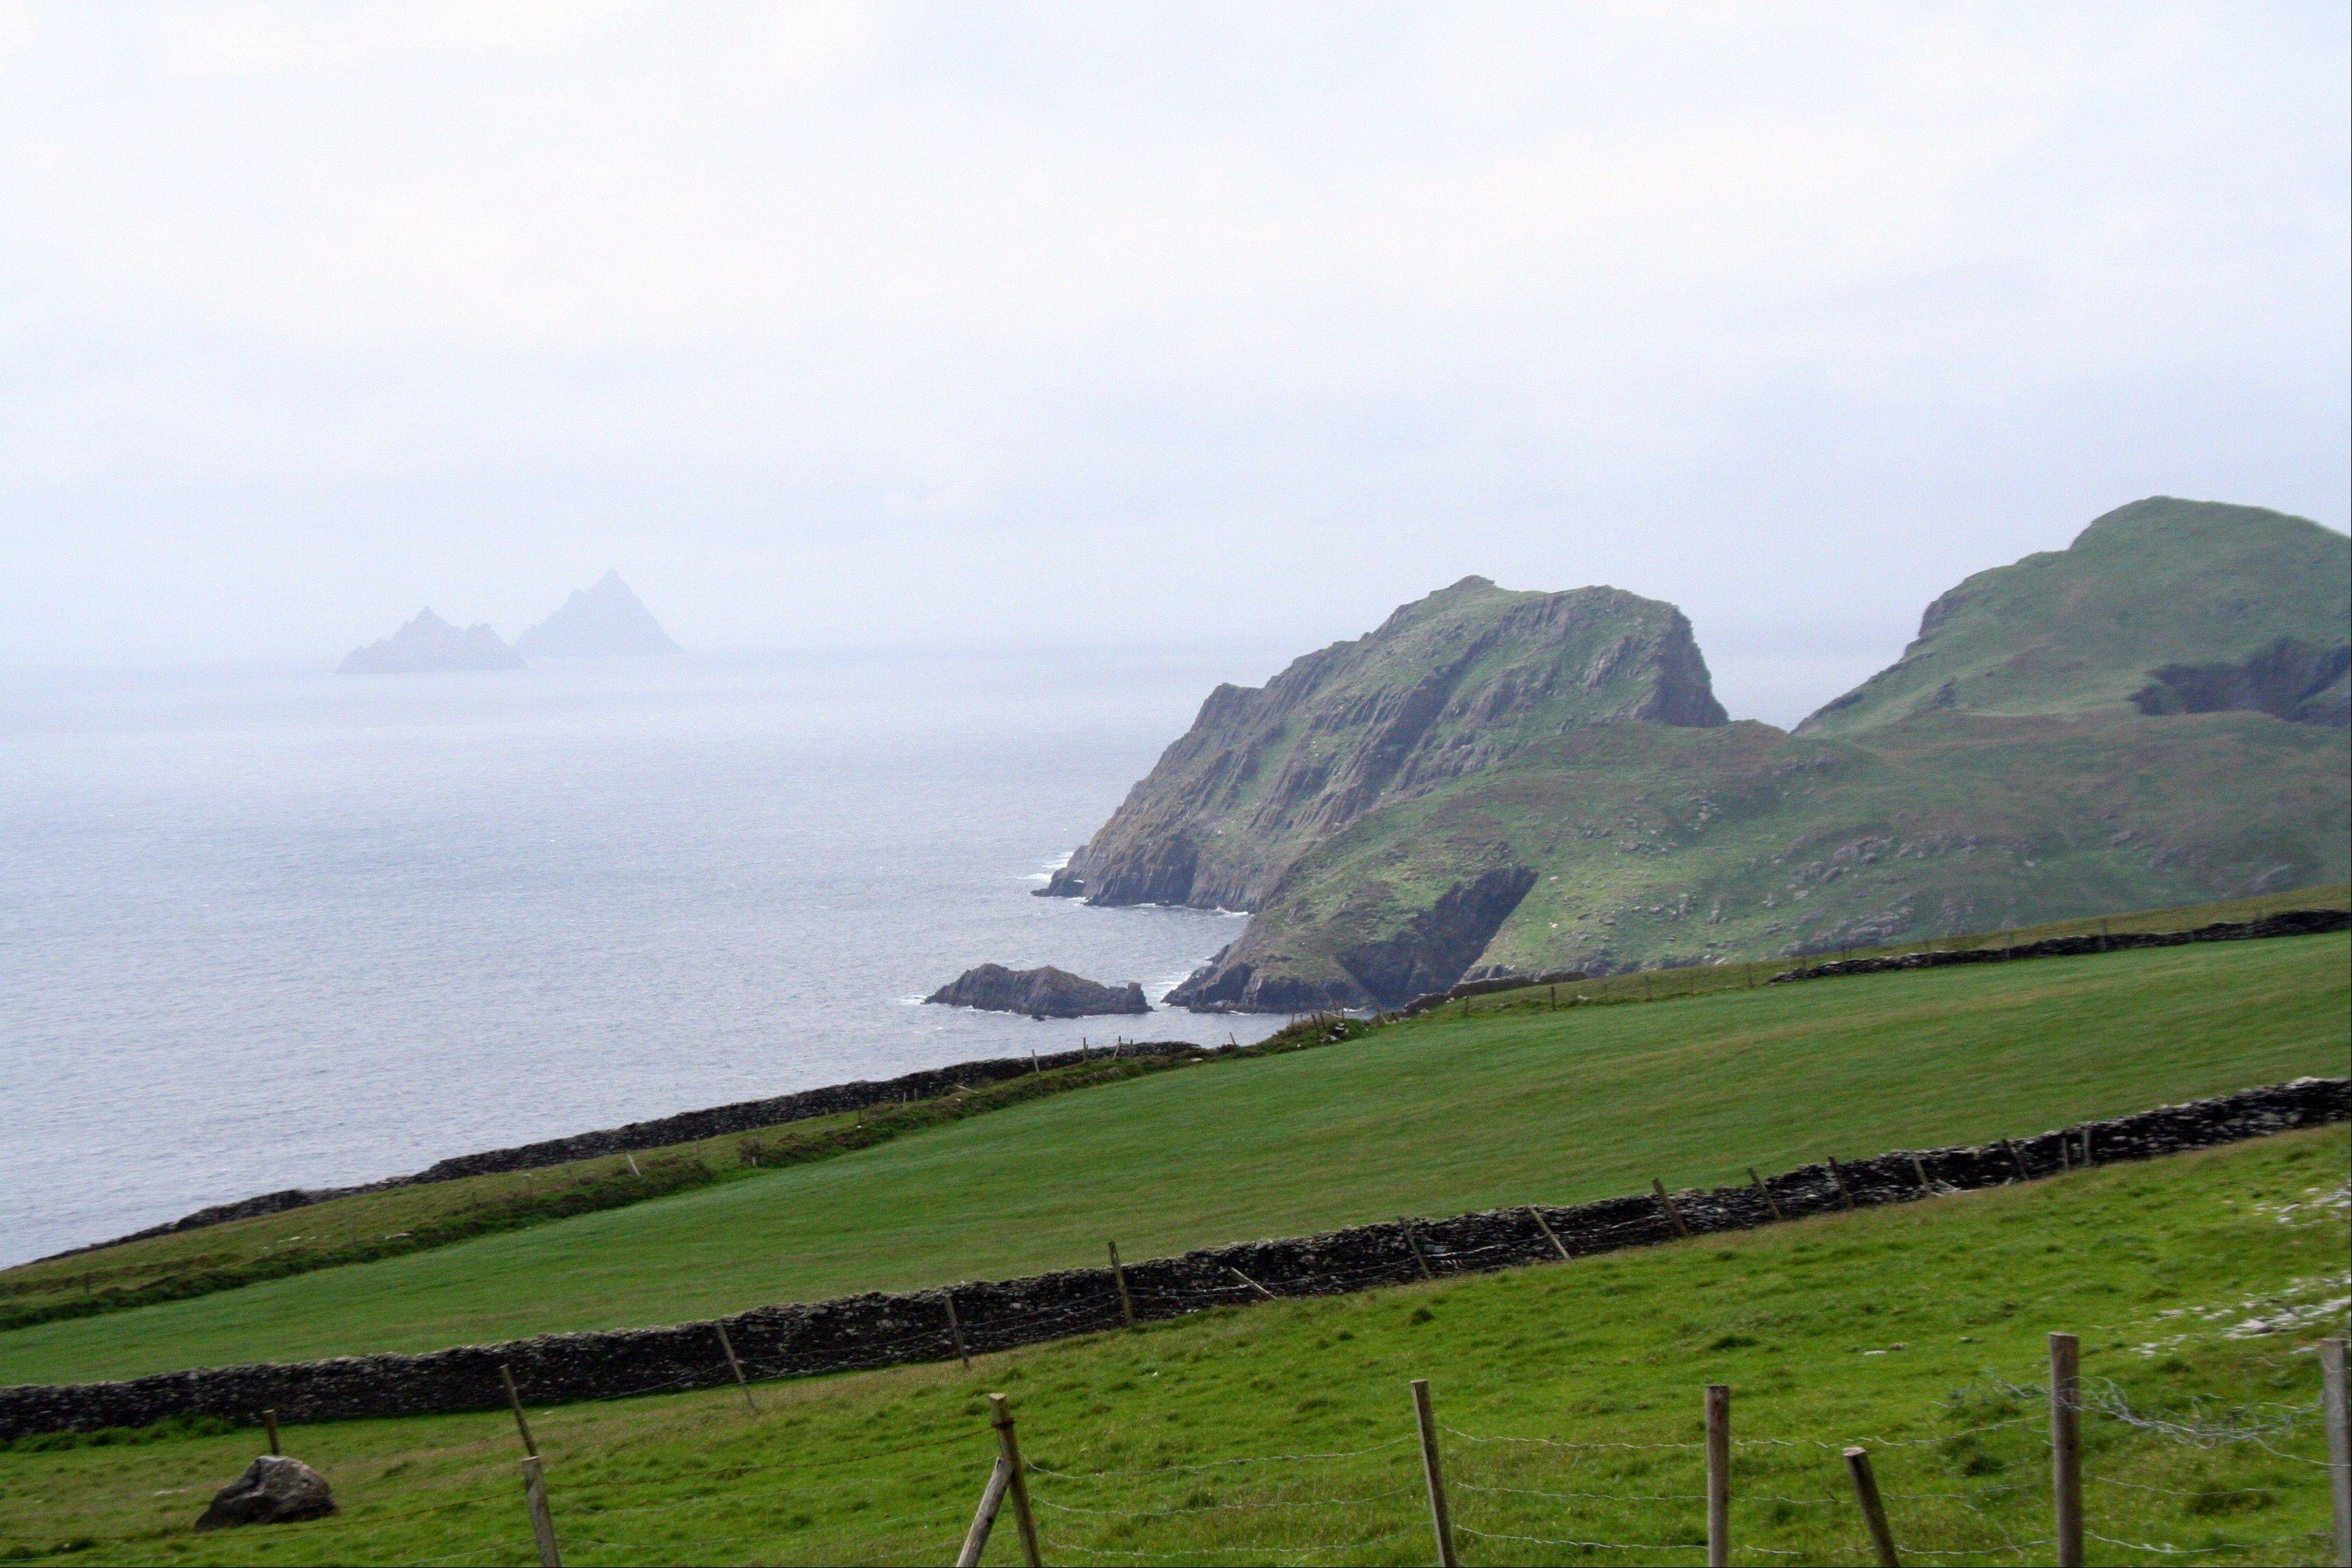 A view of the Skellig Islands off the coast of the Iveragh Peninsula in County Kerry, Ireland.